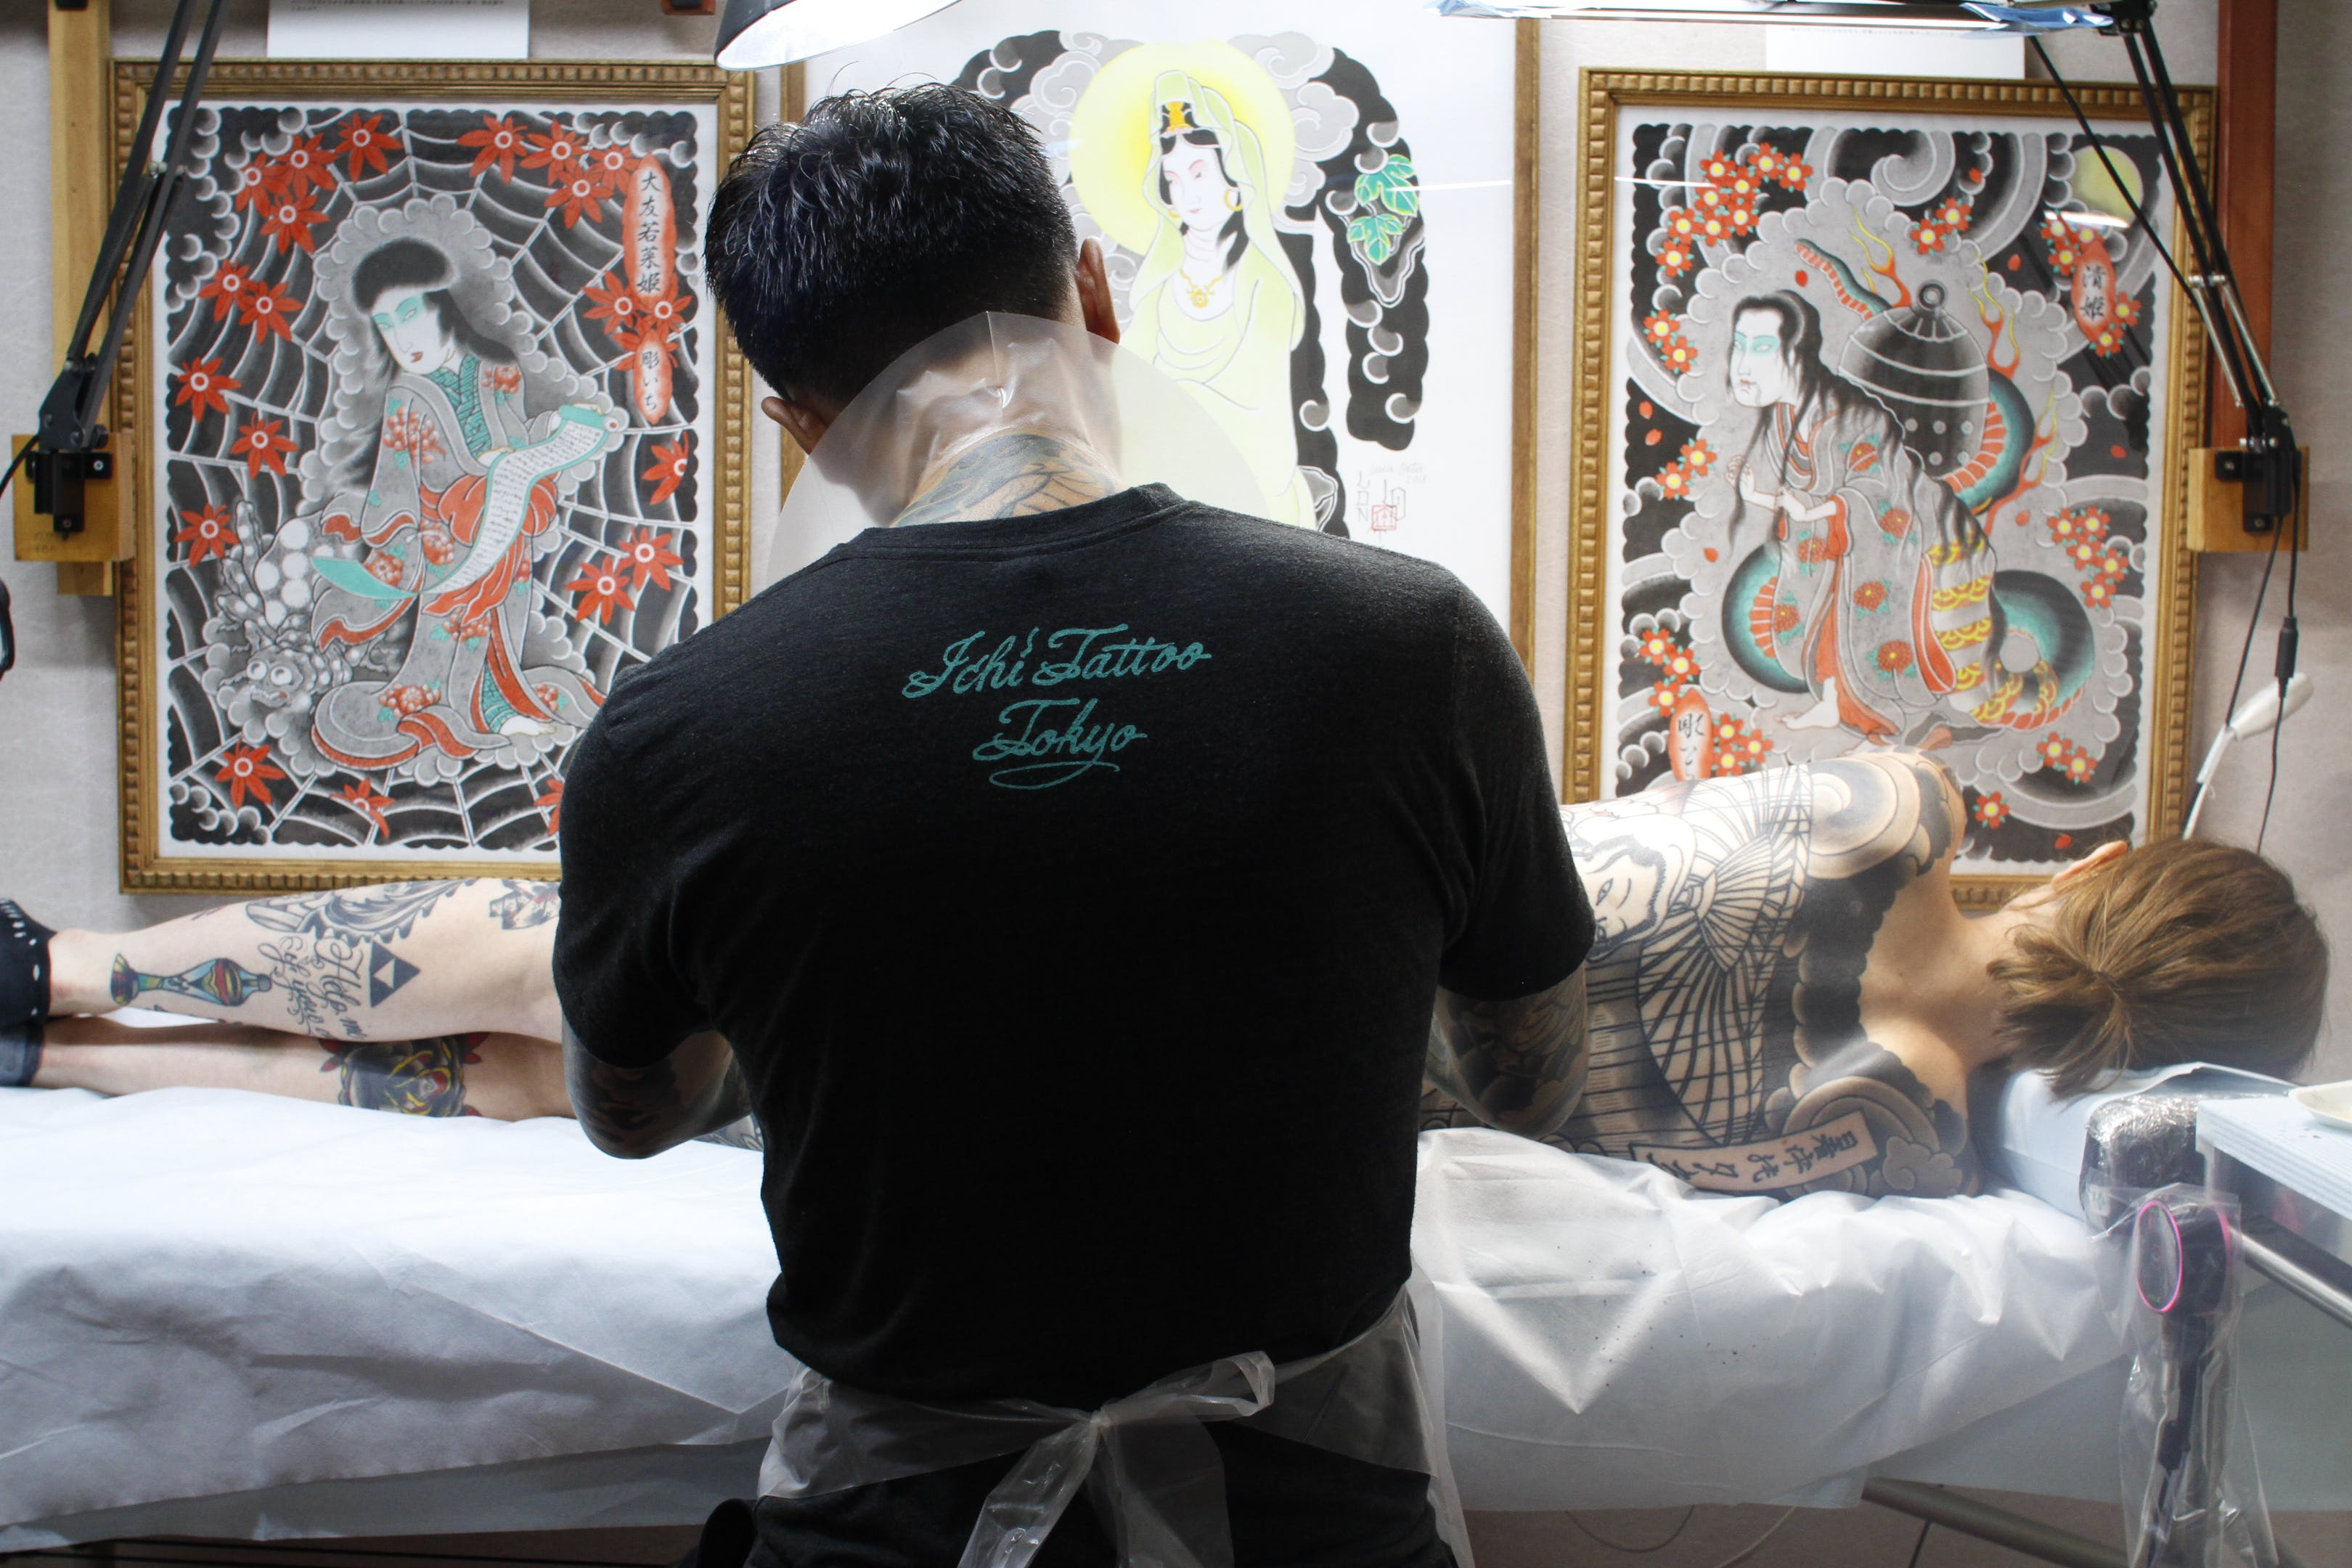 Ichi Tattoo Tokyo showcases traditional Japanese art styles in tattoos.